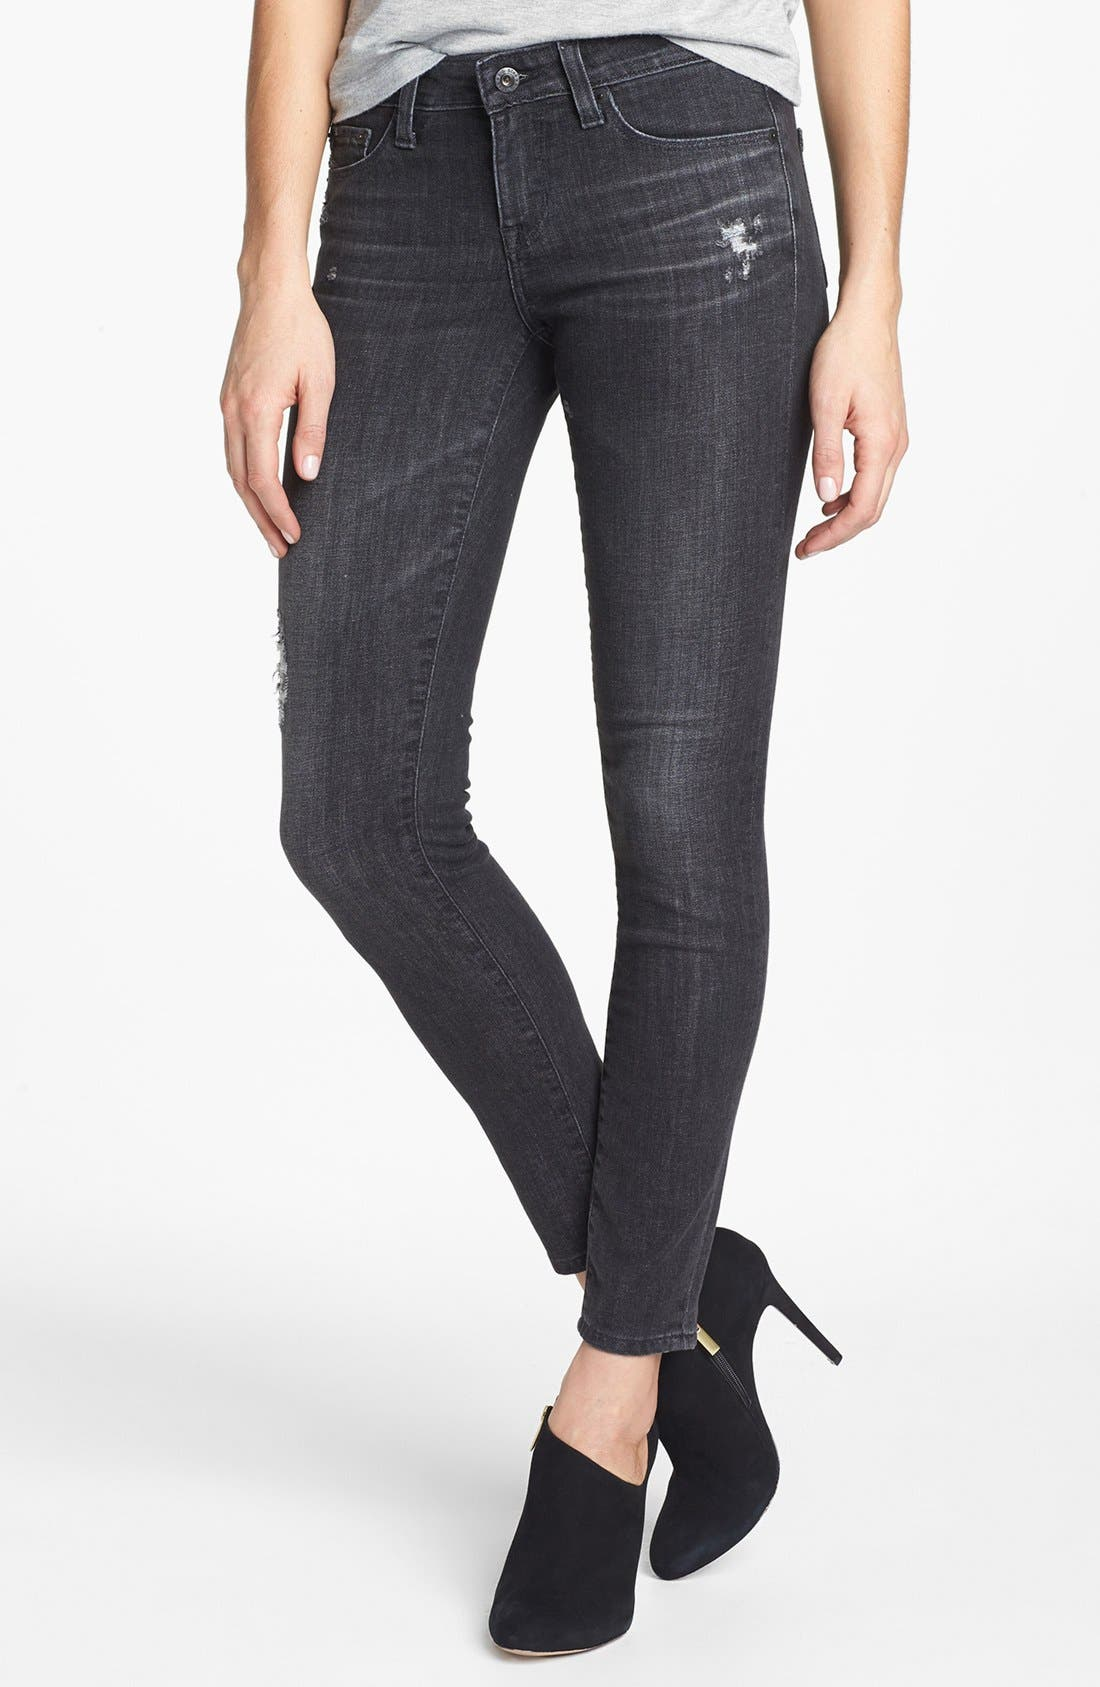 Alternate Image 1 Selected - Big Star 'Alex' Skinny Jeans (Moscow) (Petite)